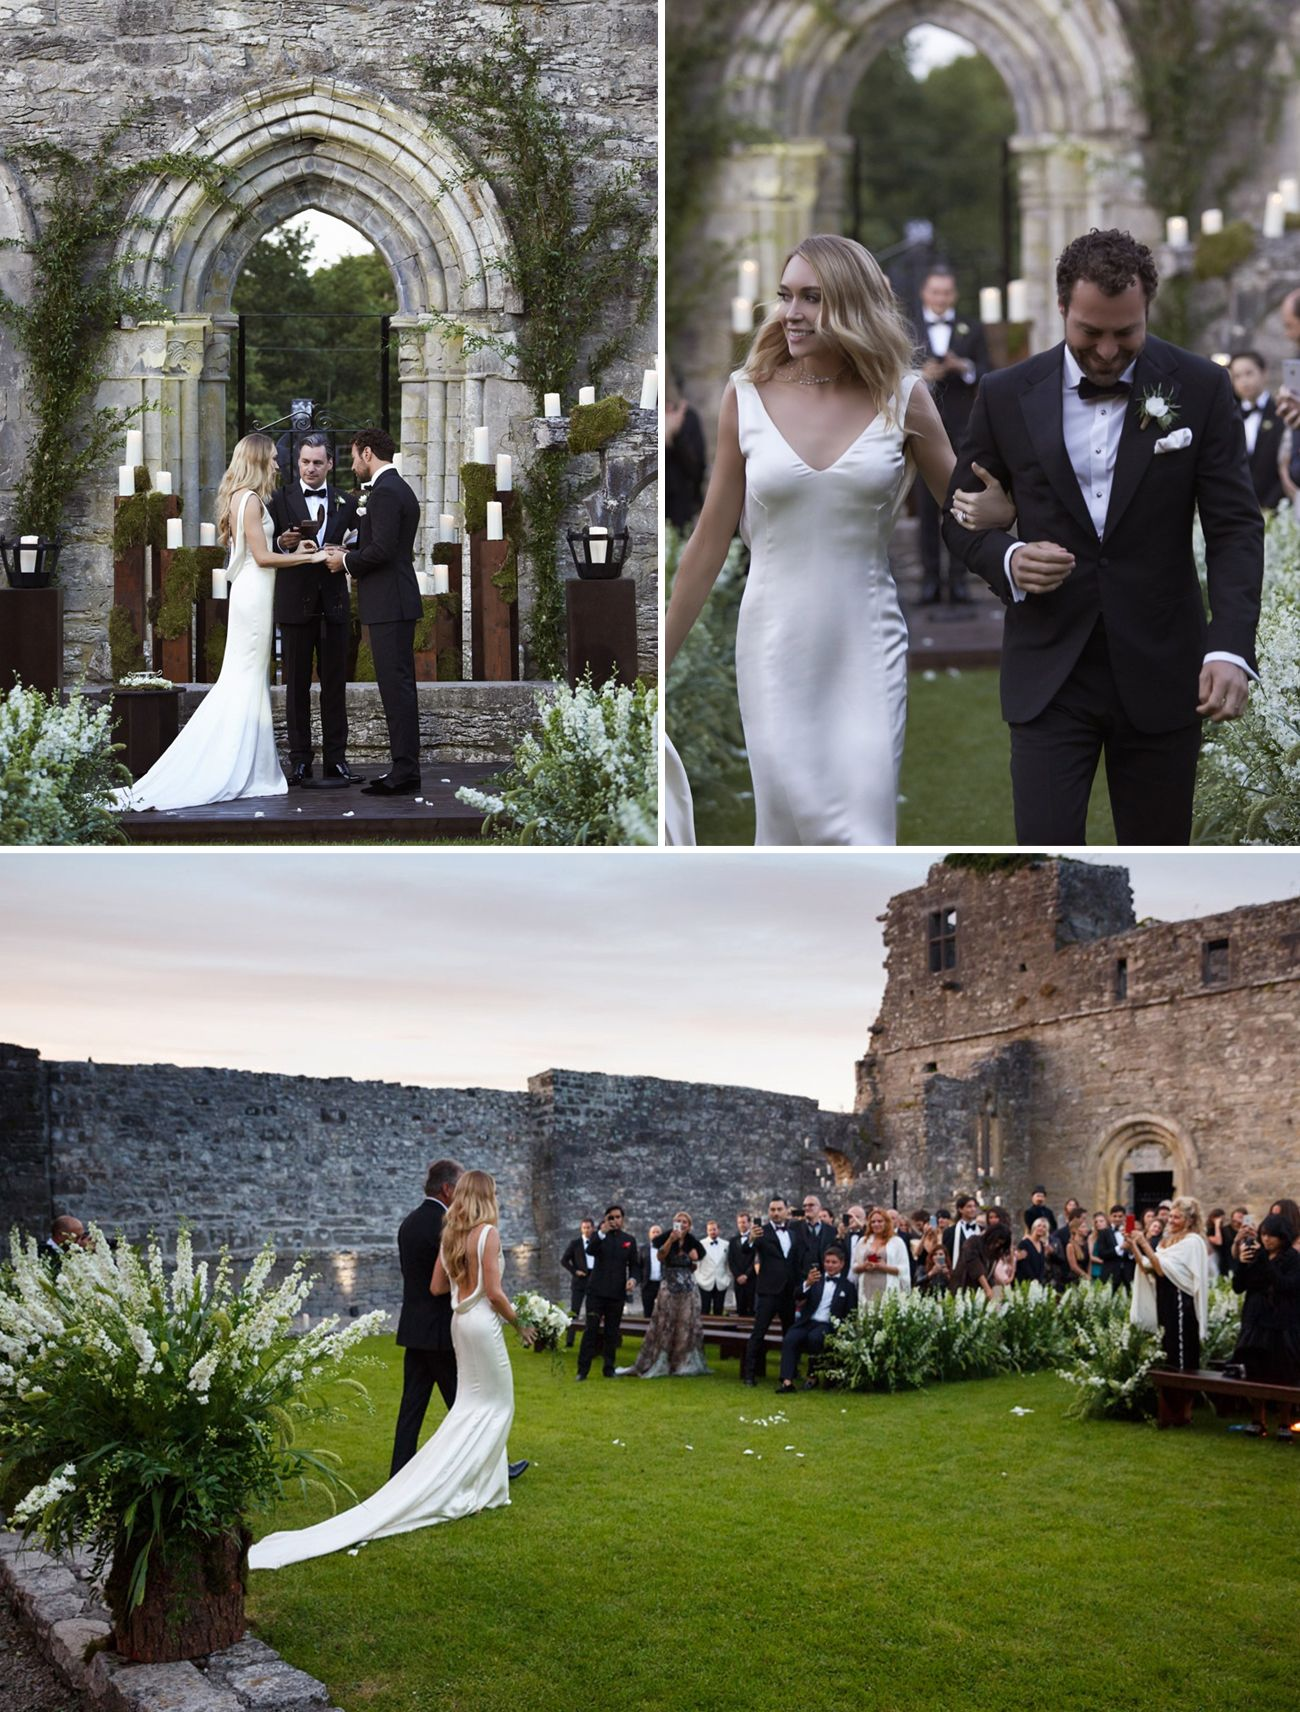 Live Out All Your Fairy Tale Dreams These Are The Most Romantic Castles To Get Married At Castle Wedding Ireland Europe Wedding Castle Wedding